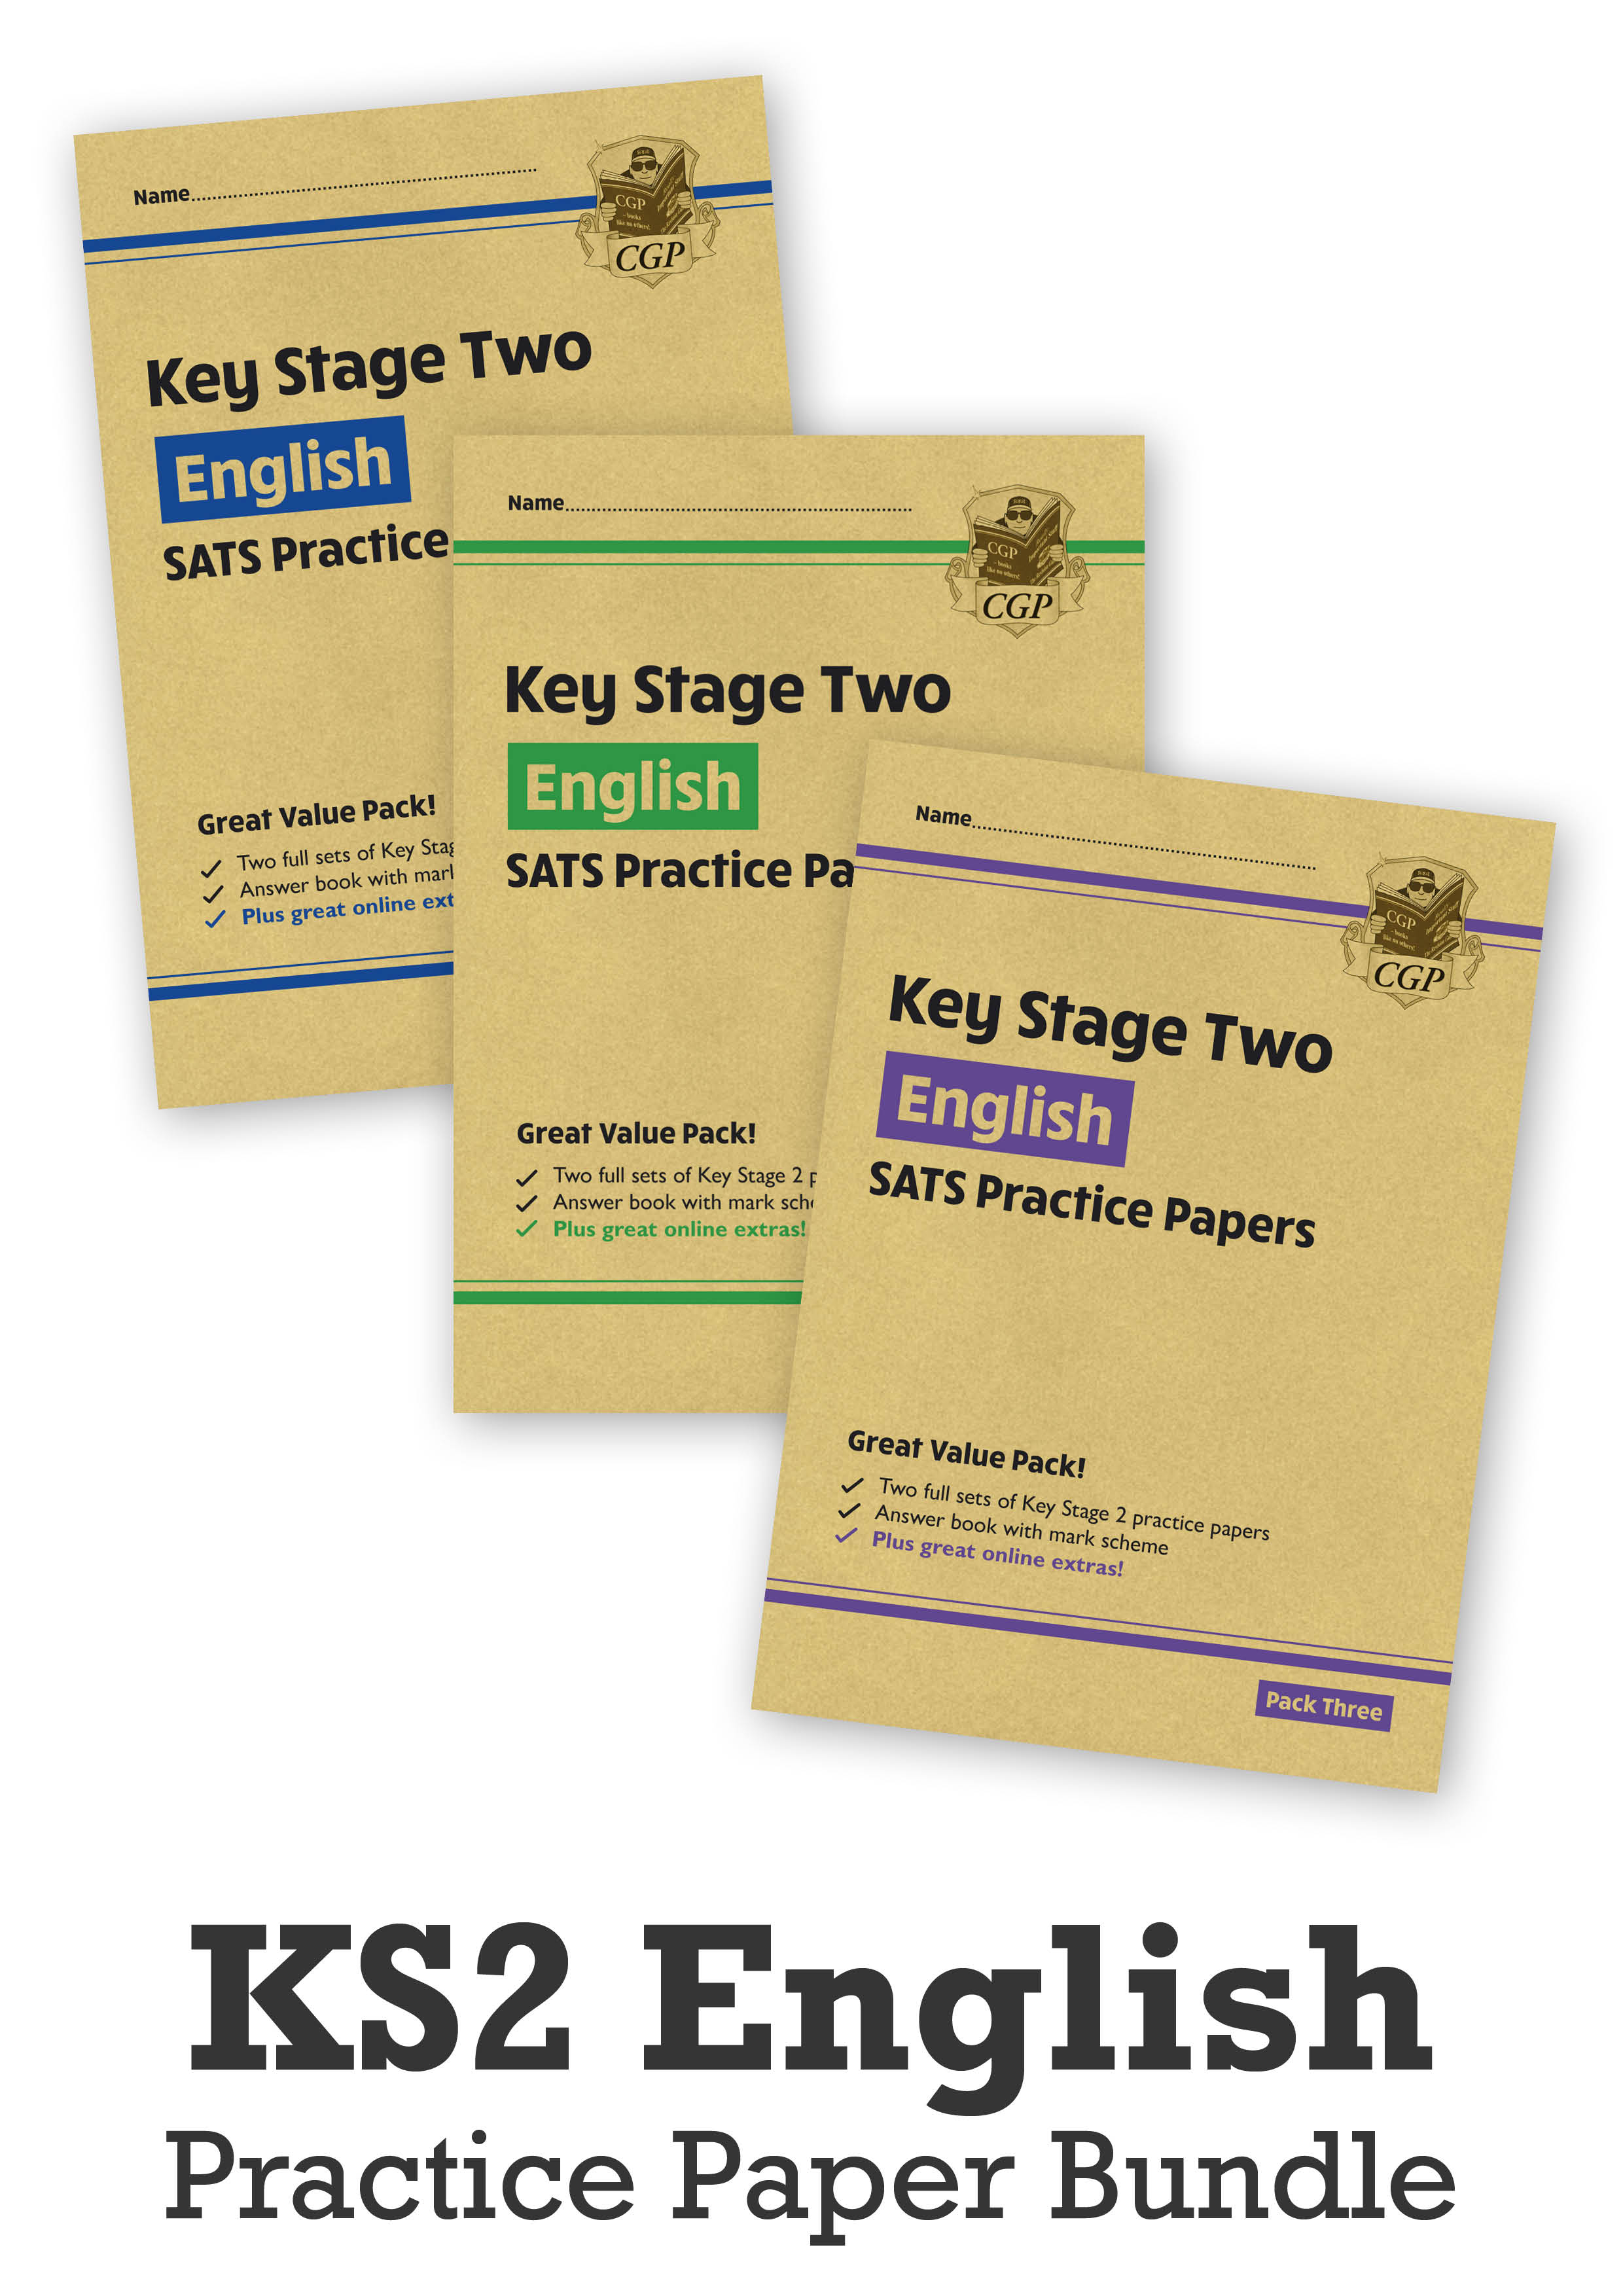 EHB3P24 - KS2 English SATS Practice Paper Bundle: Packs 1, 2, & 3 (with Online Extras)